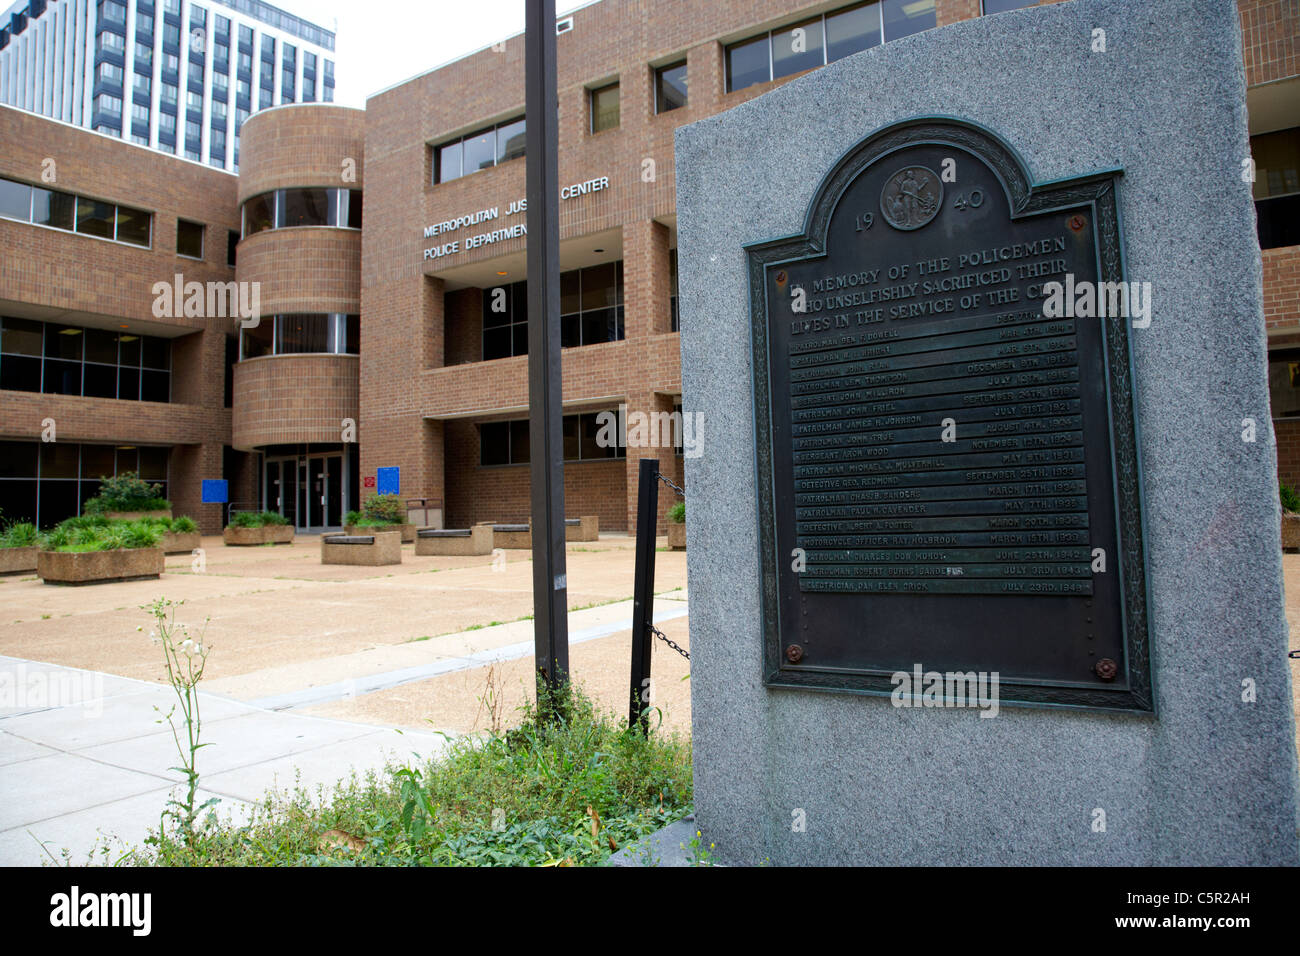 police memorial outside Metropolitan Justice Center and police station Nashville Tennessee USA - Stock Image